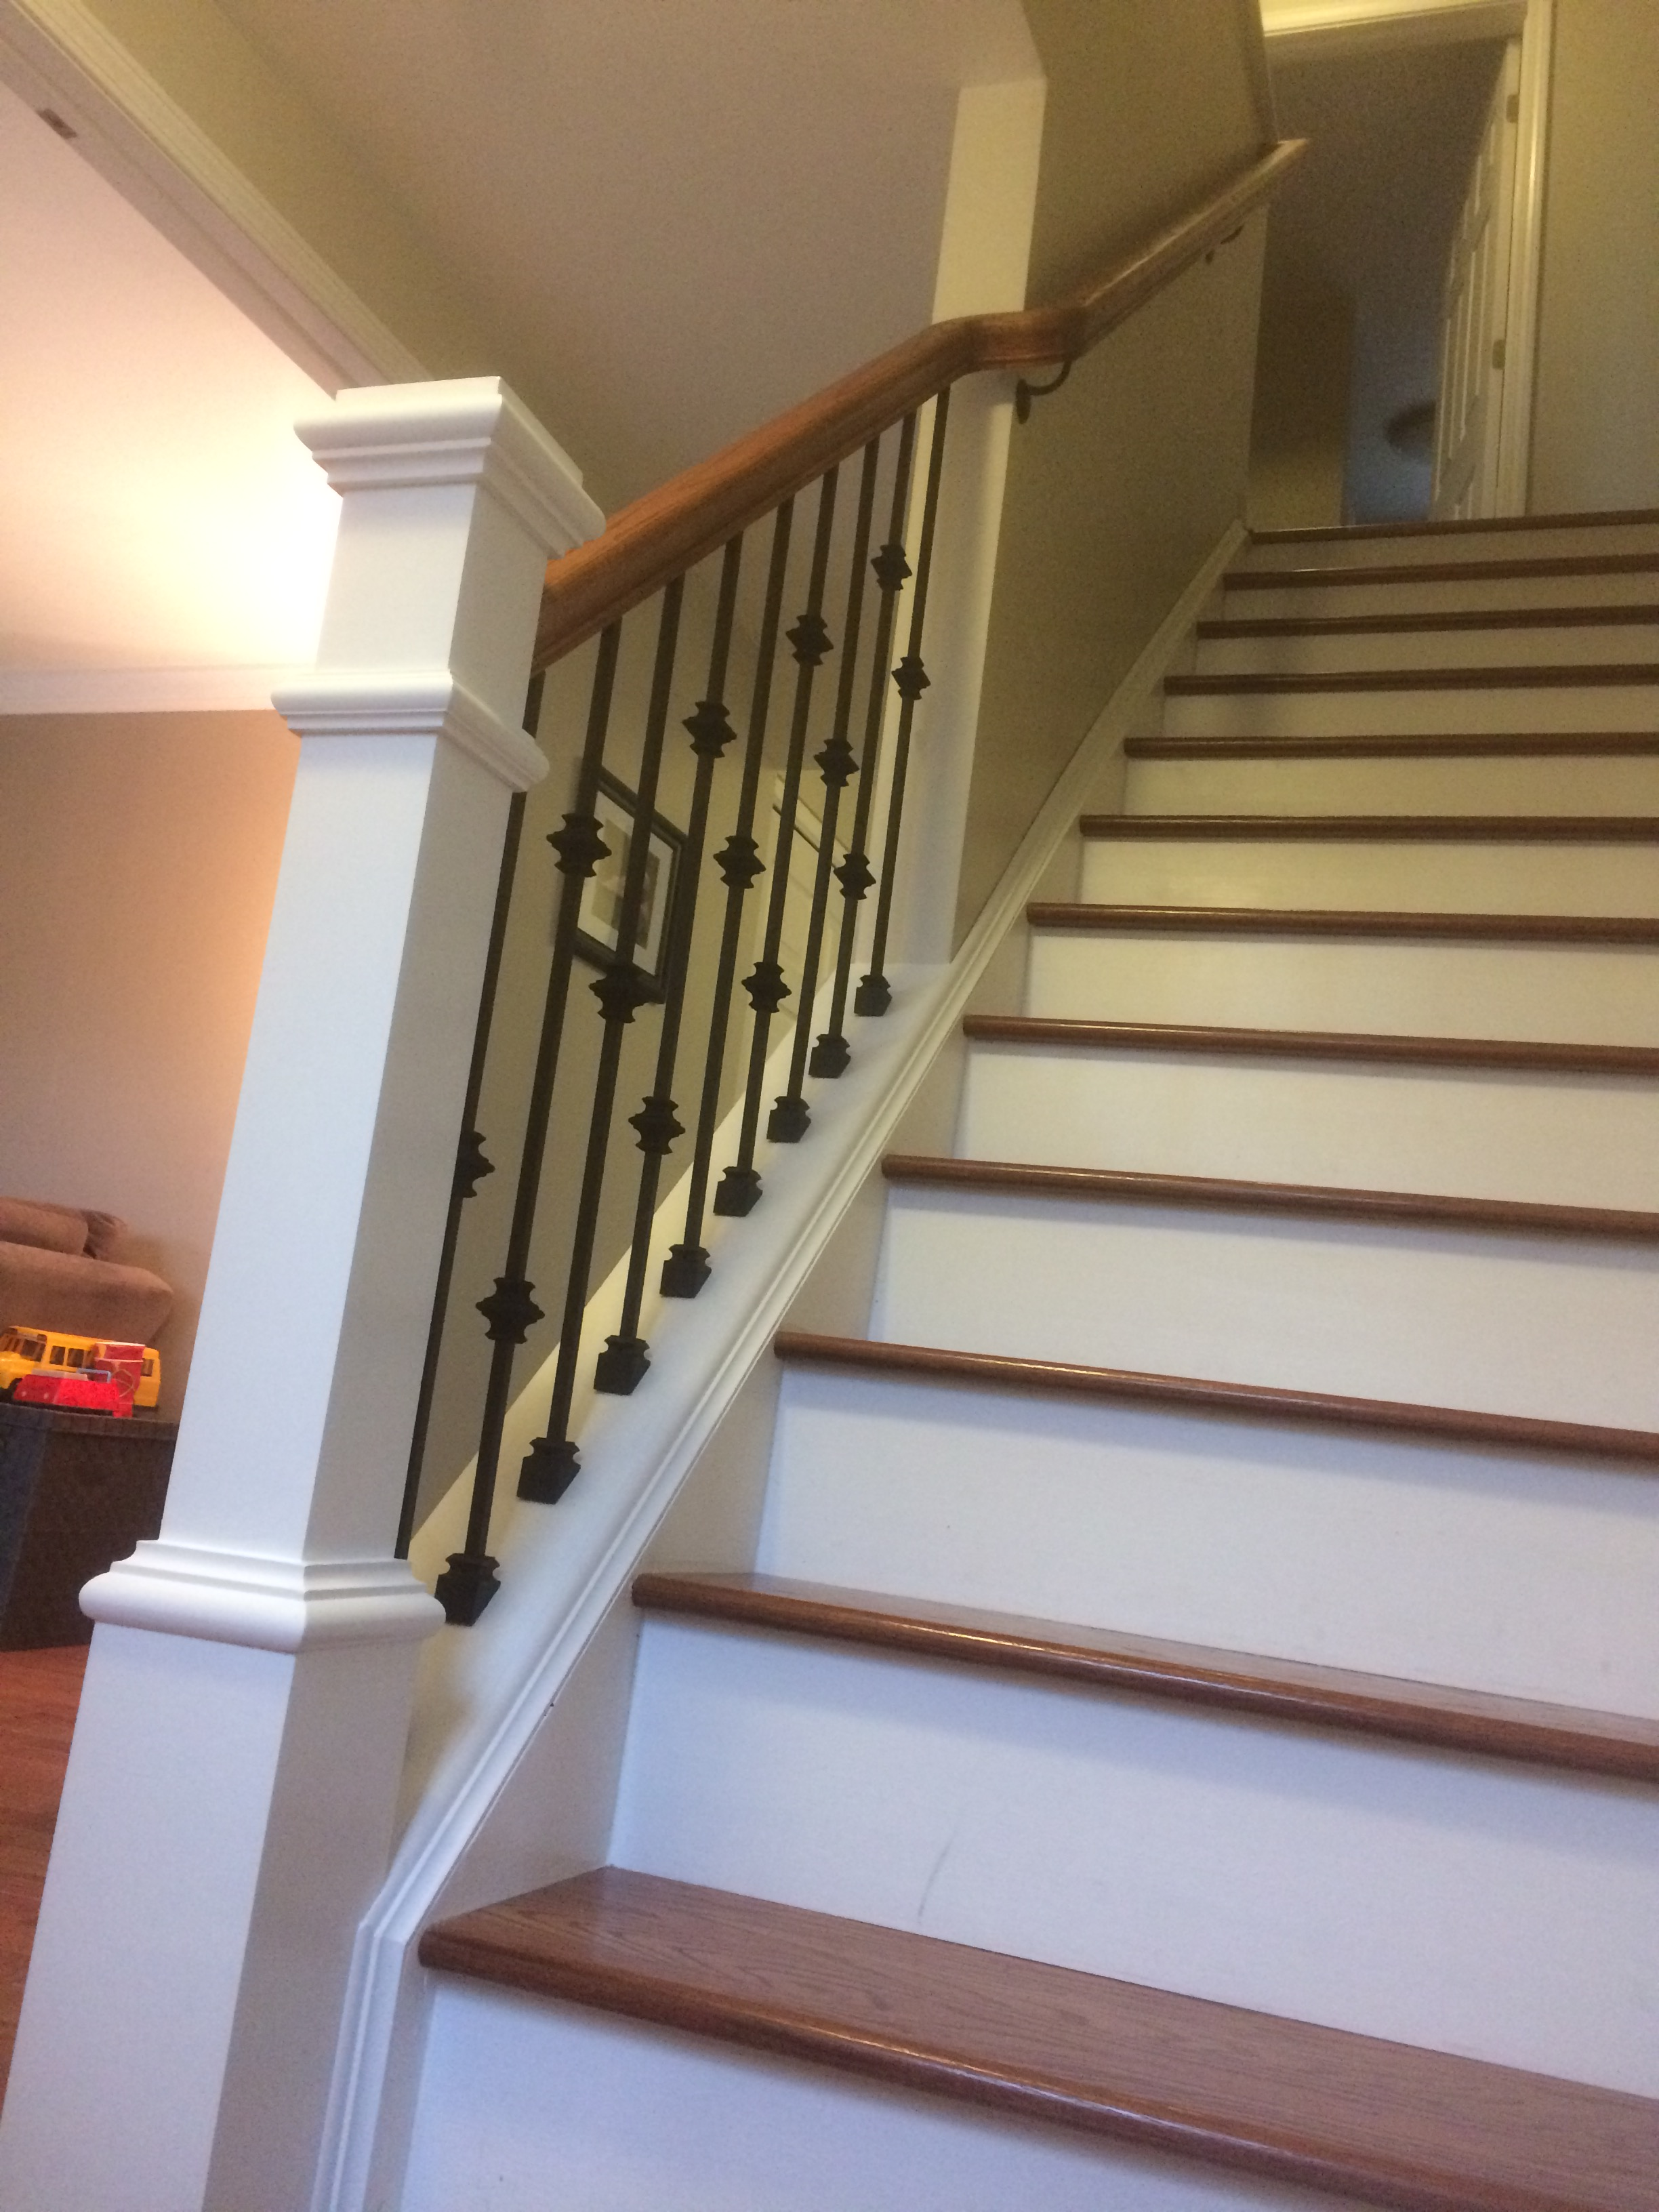 Wood Iron Railings : Wood railing with wrought iron balusters lux design and